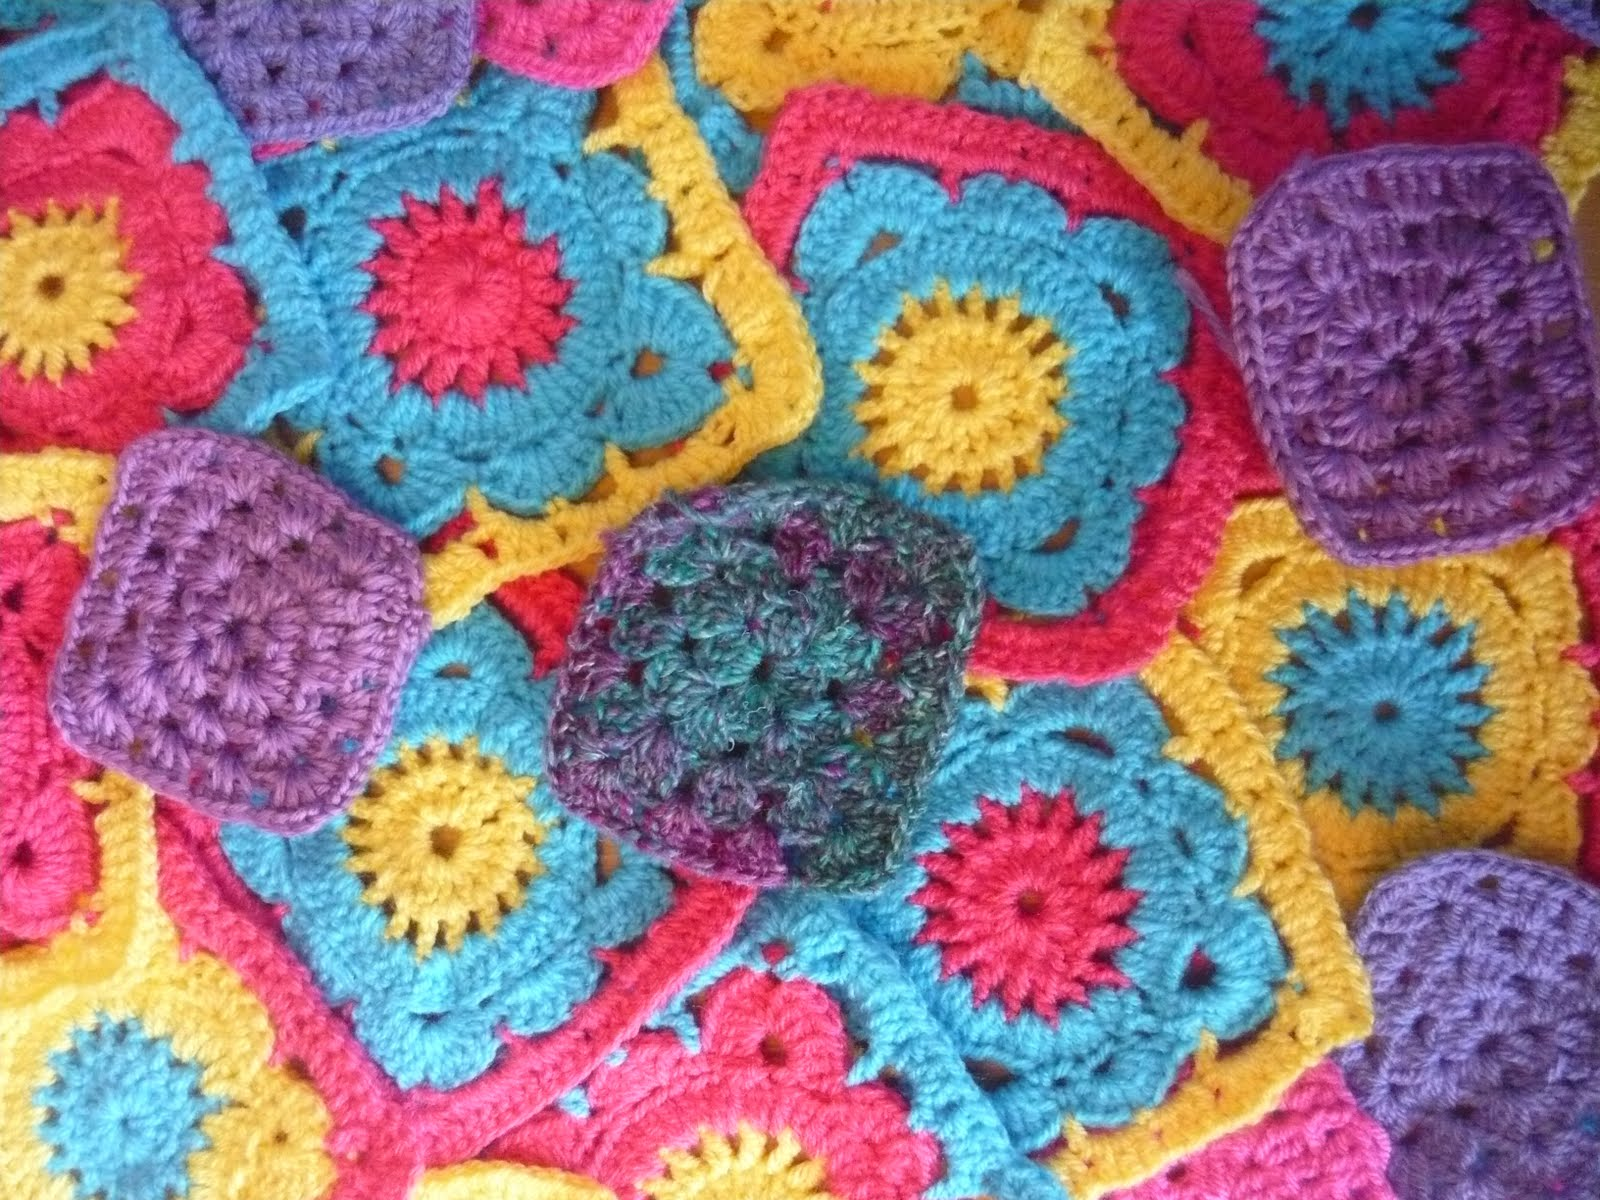 Crocheting Grandma : The Gingerbread Bunny: How to crochet a Granny Square!